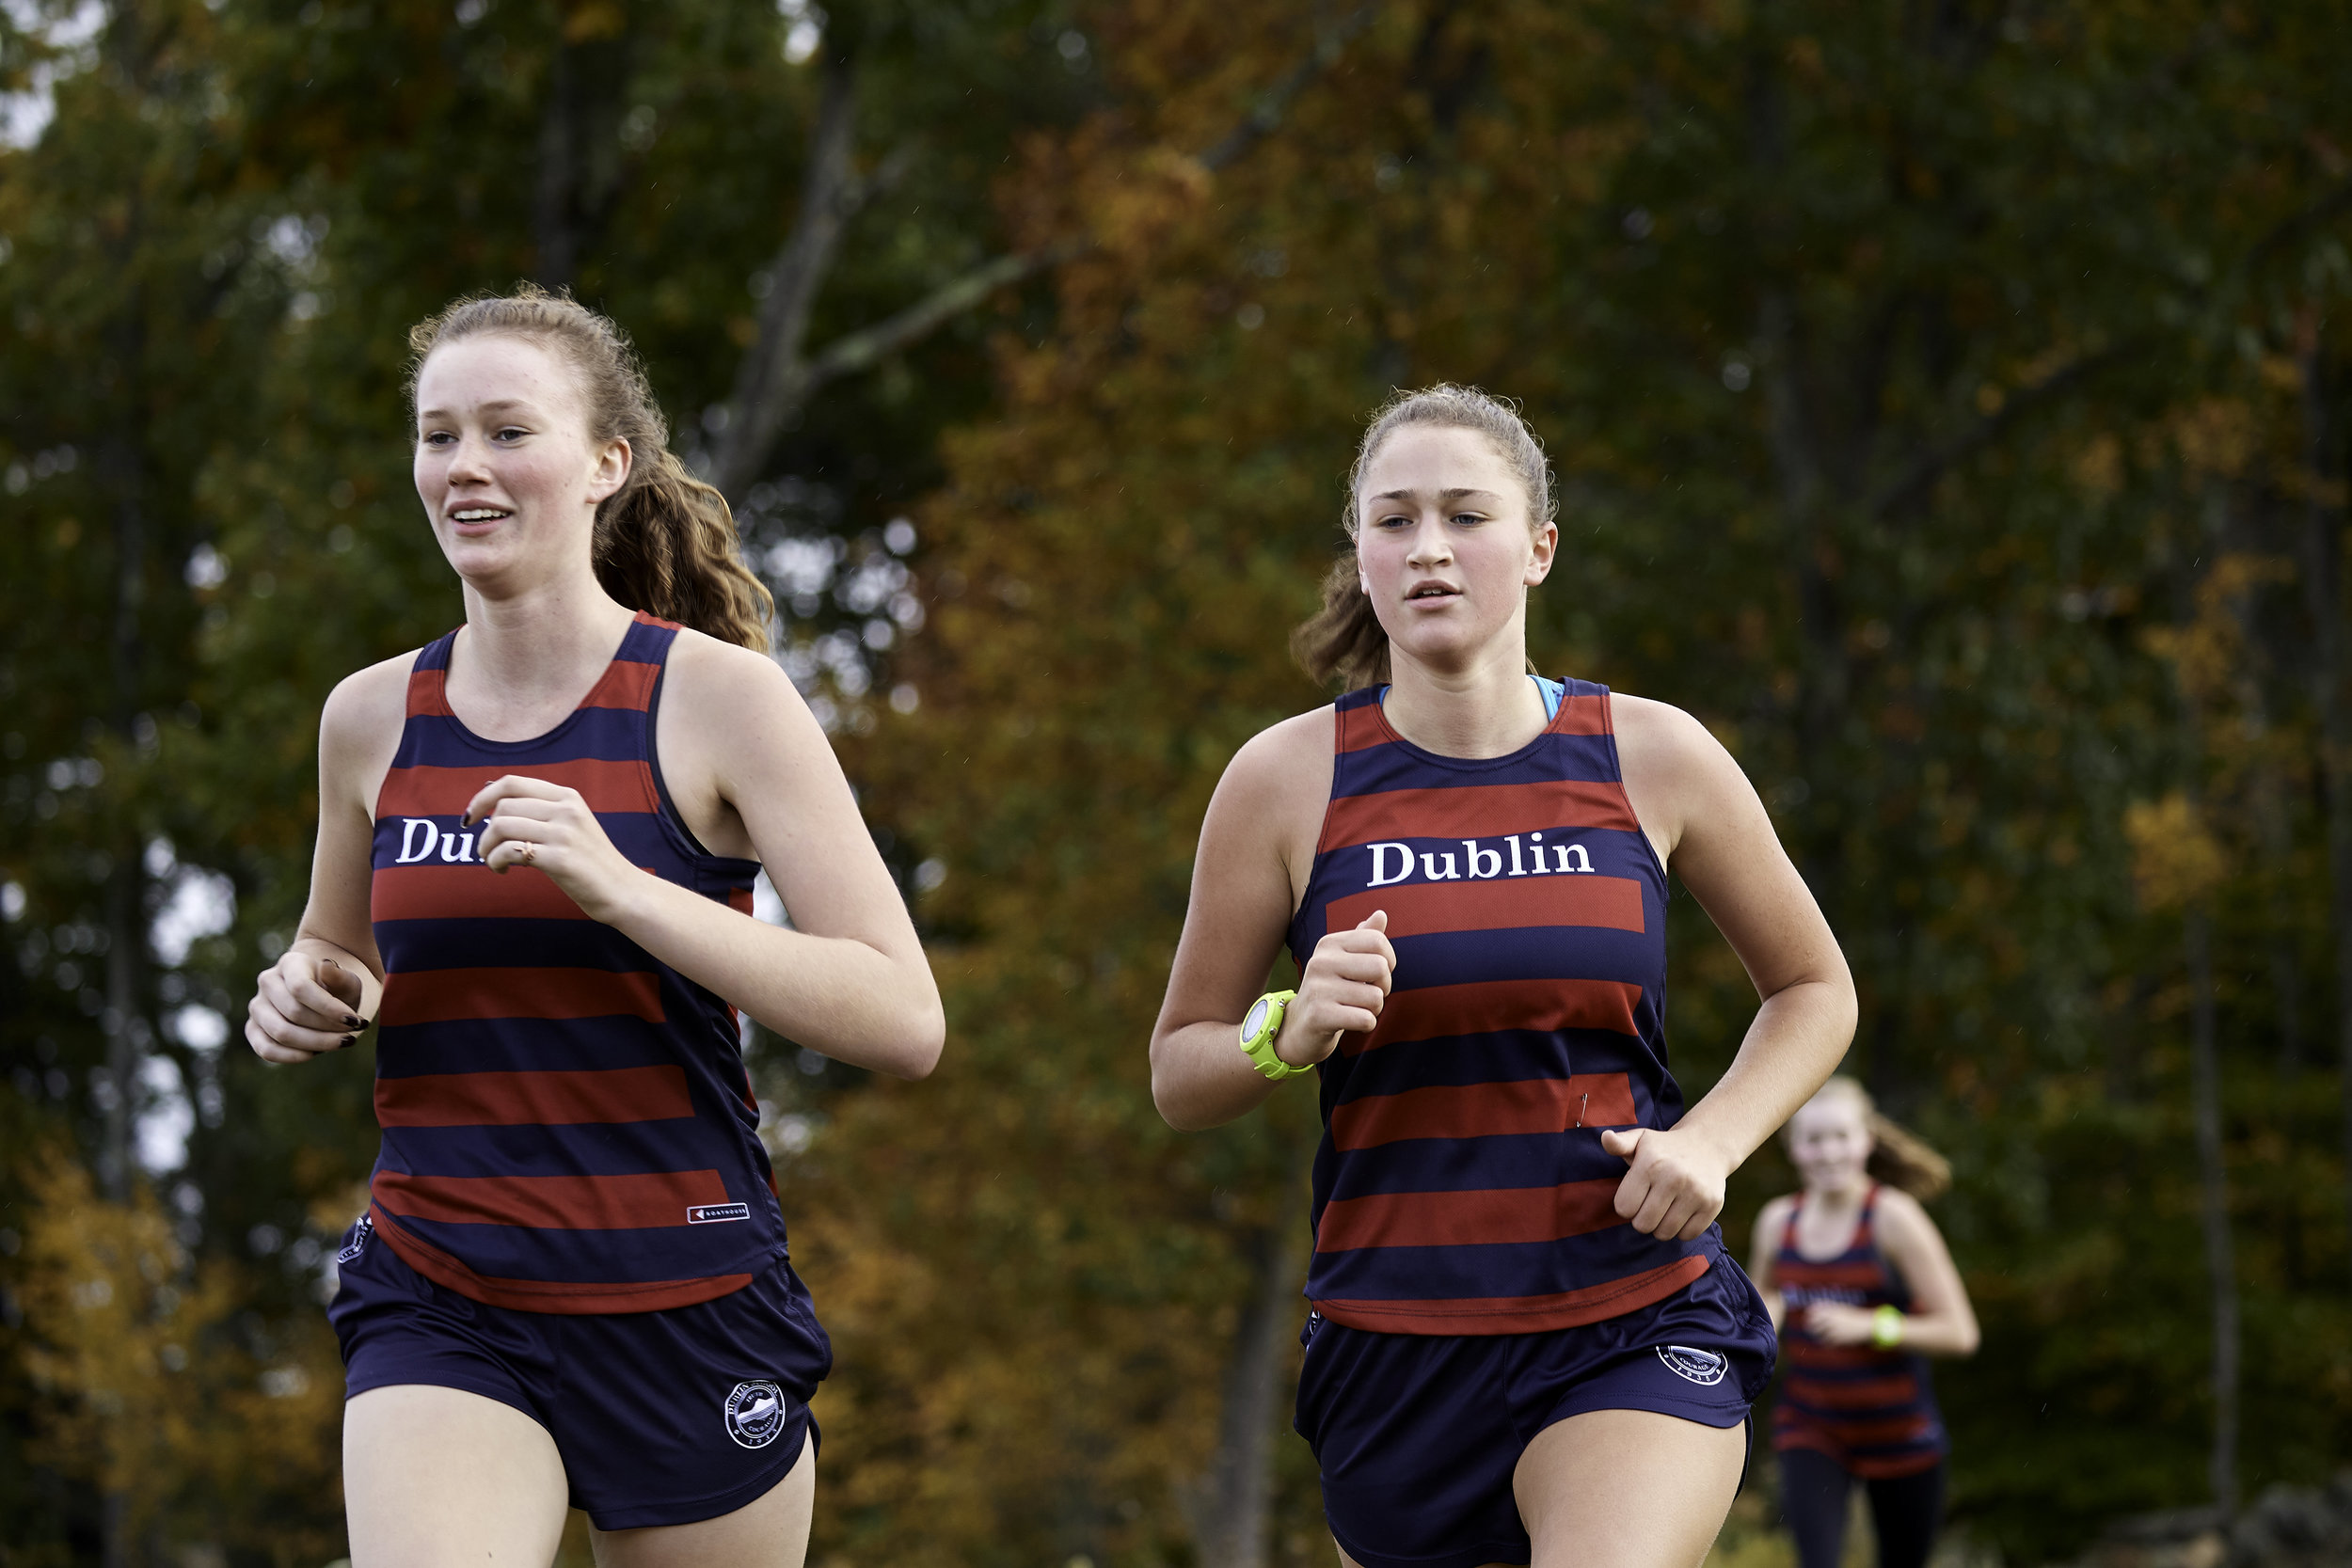 Dublion Invitational - October 12, 2018 - 136574.jpg